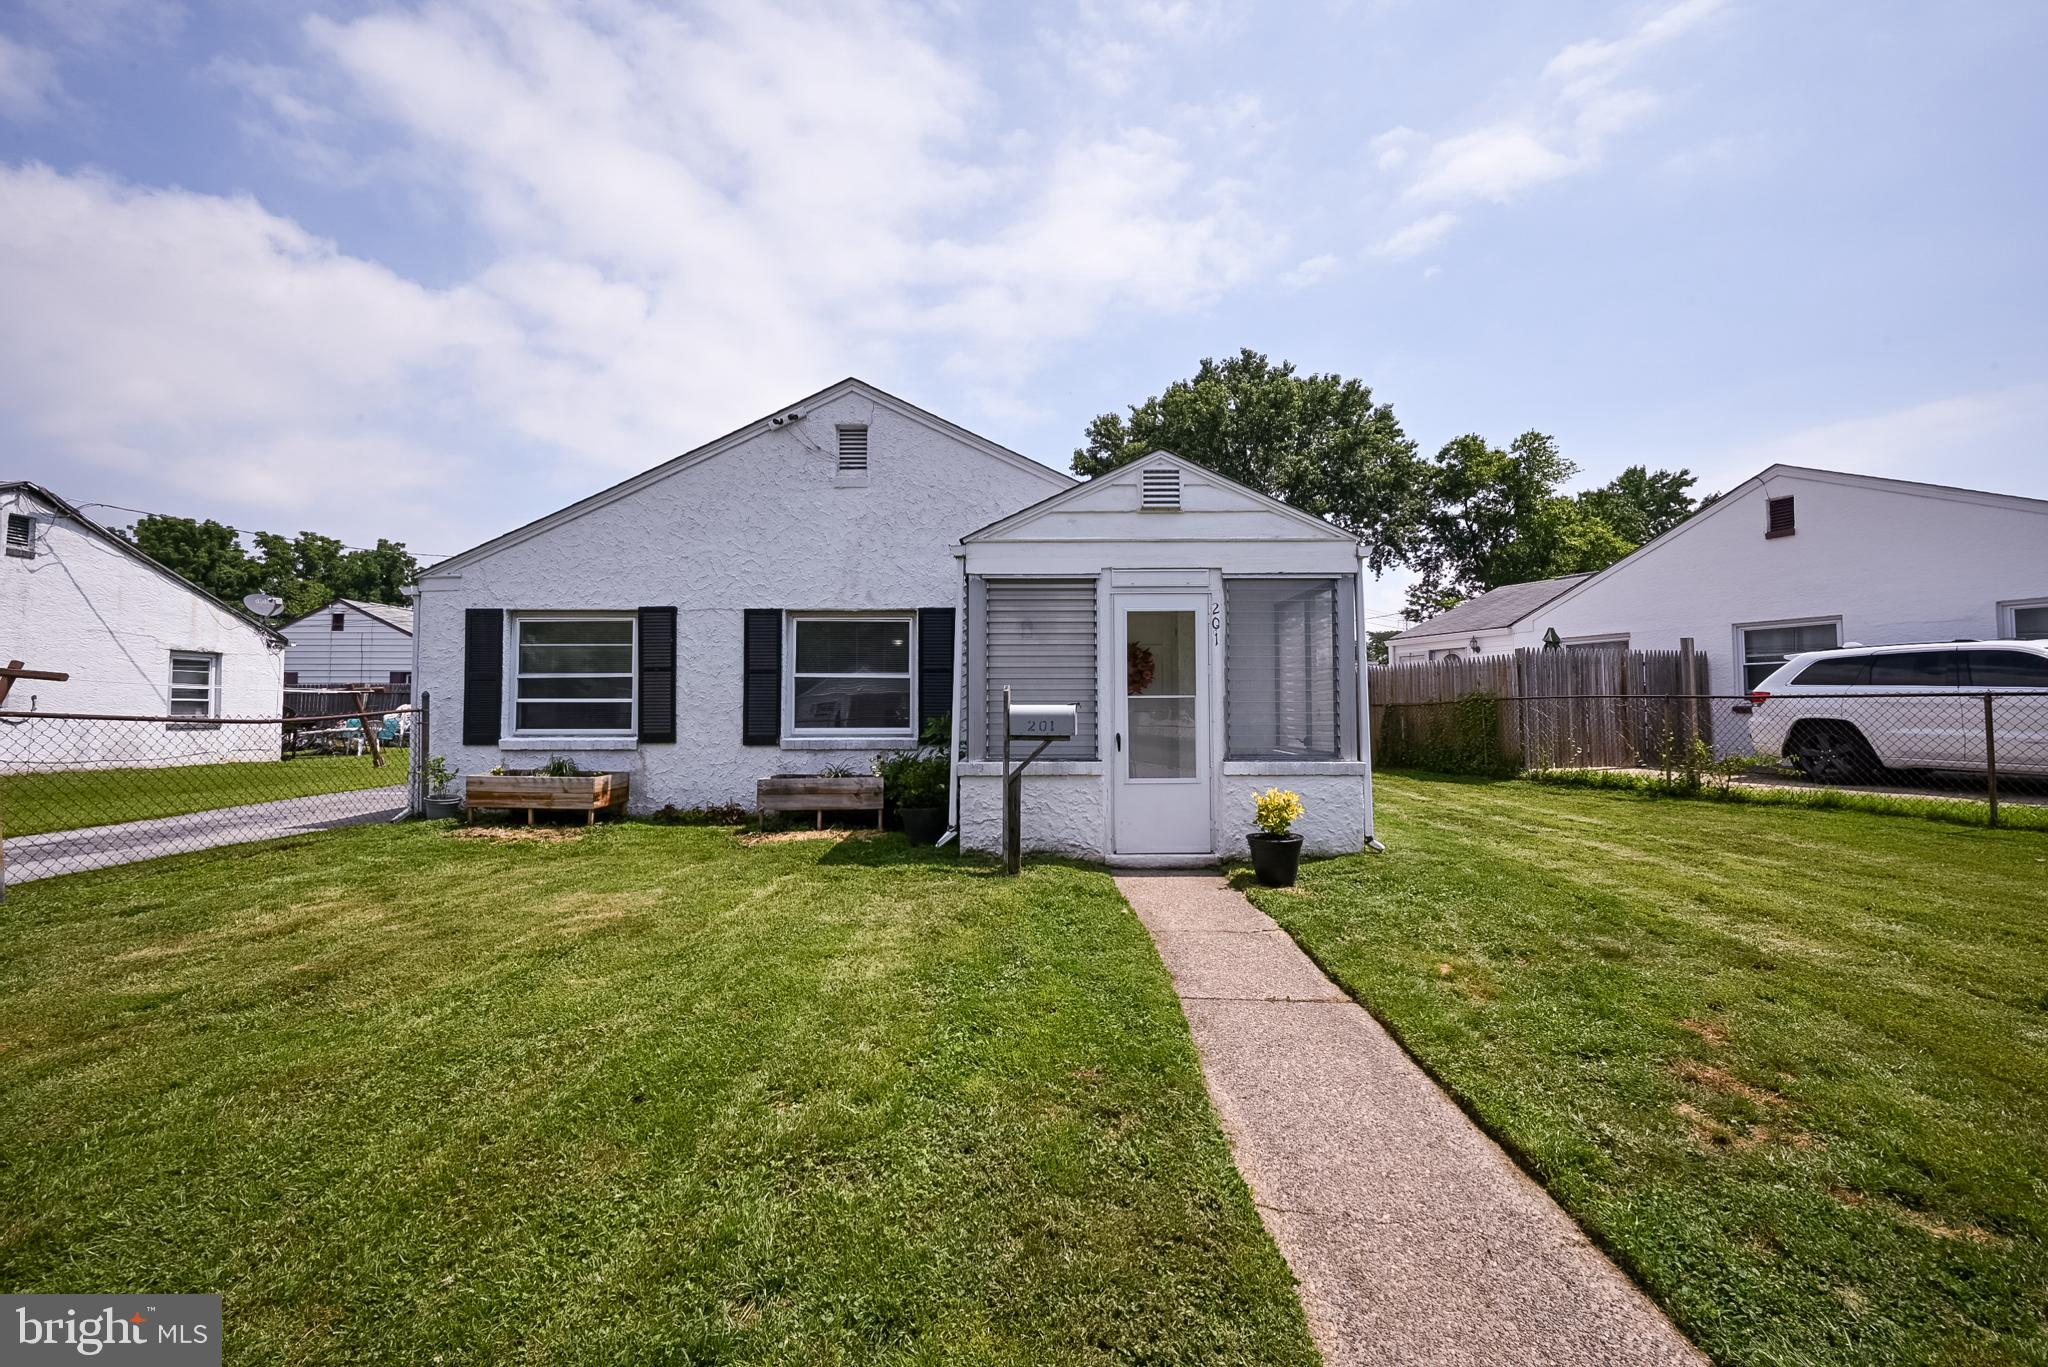 Great starter home in MOVE IN CONDITION!  Roof is 3 years old * AC unit replaced in 2020 * Driveway